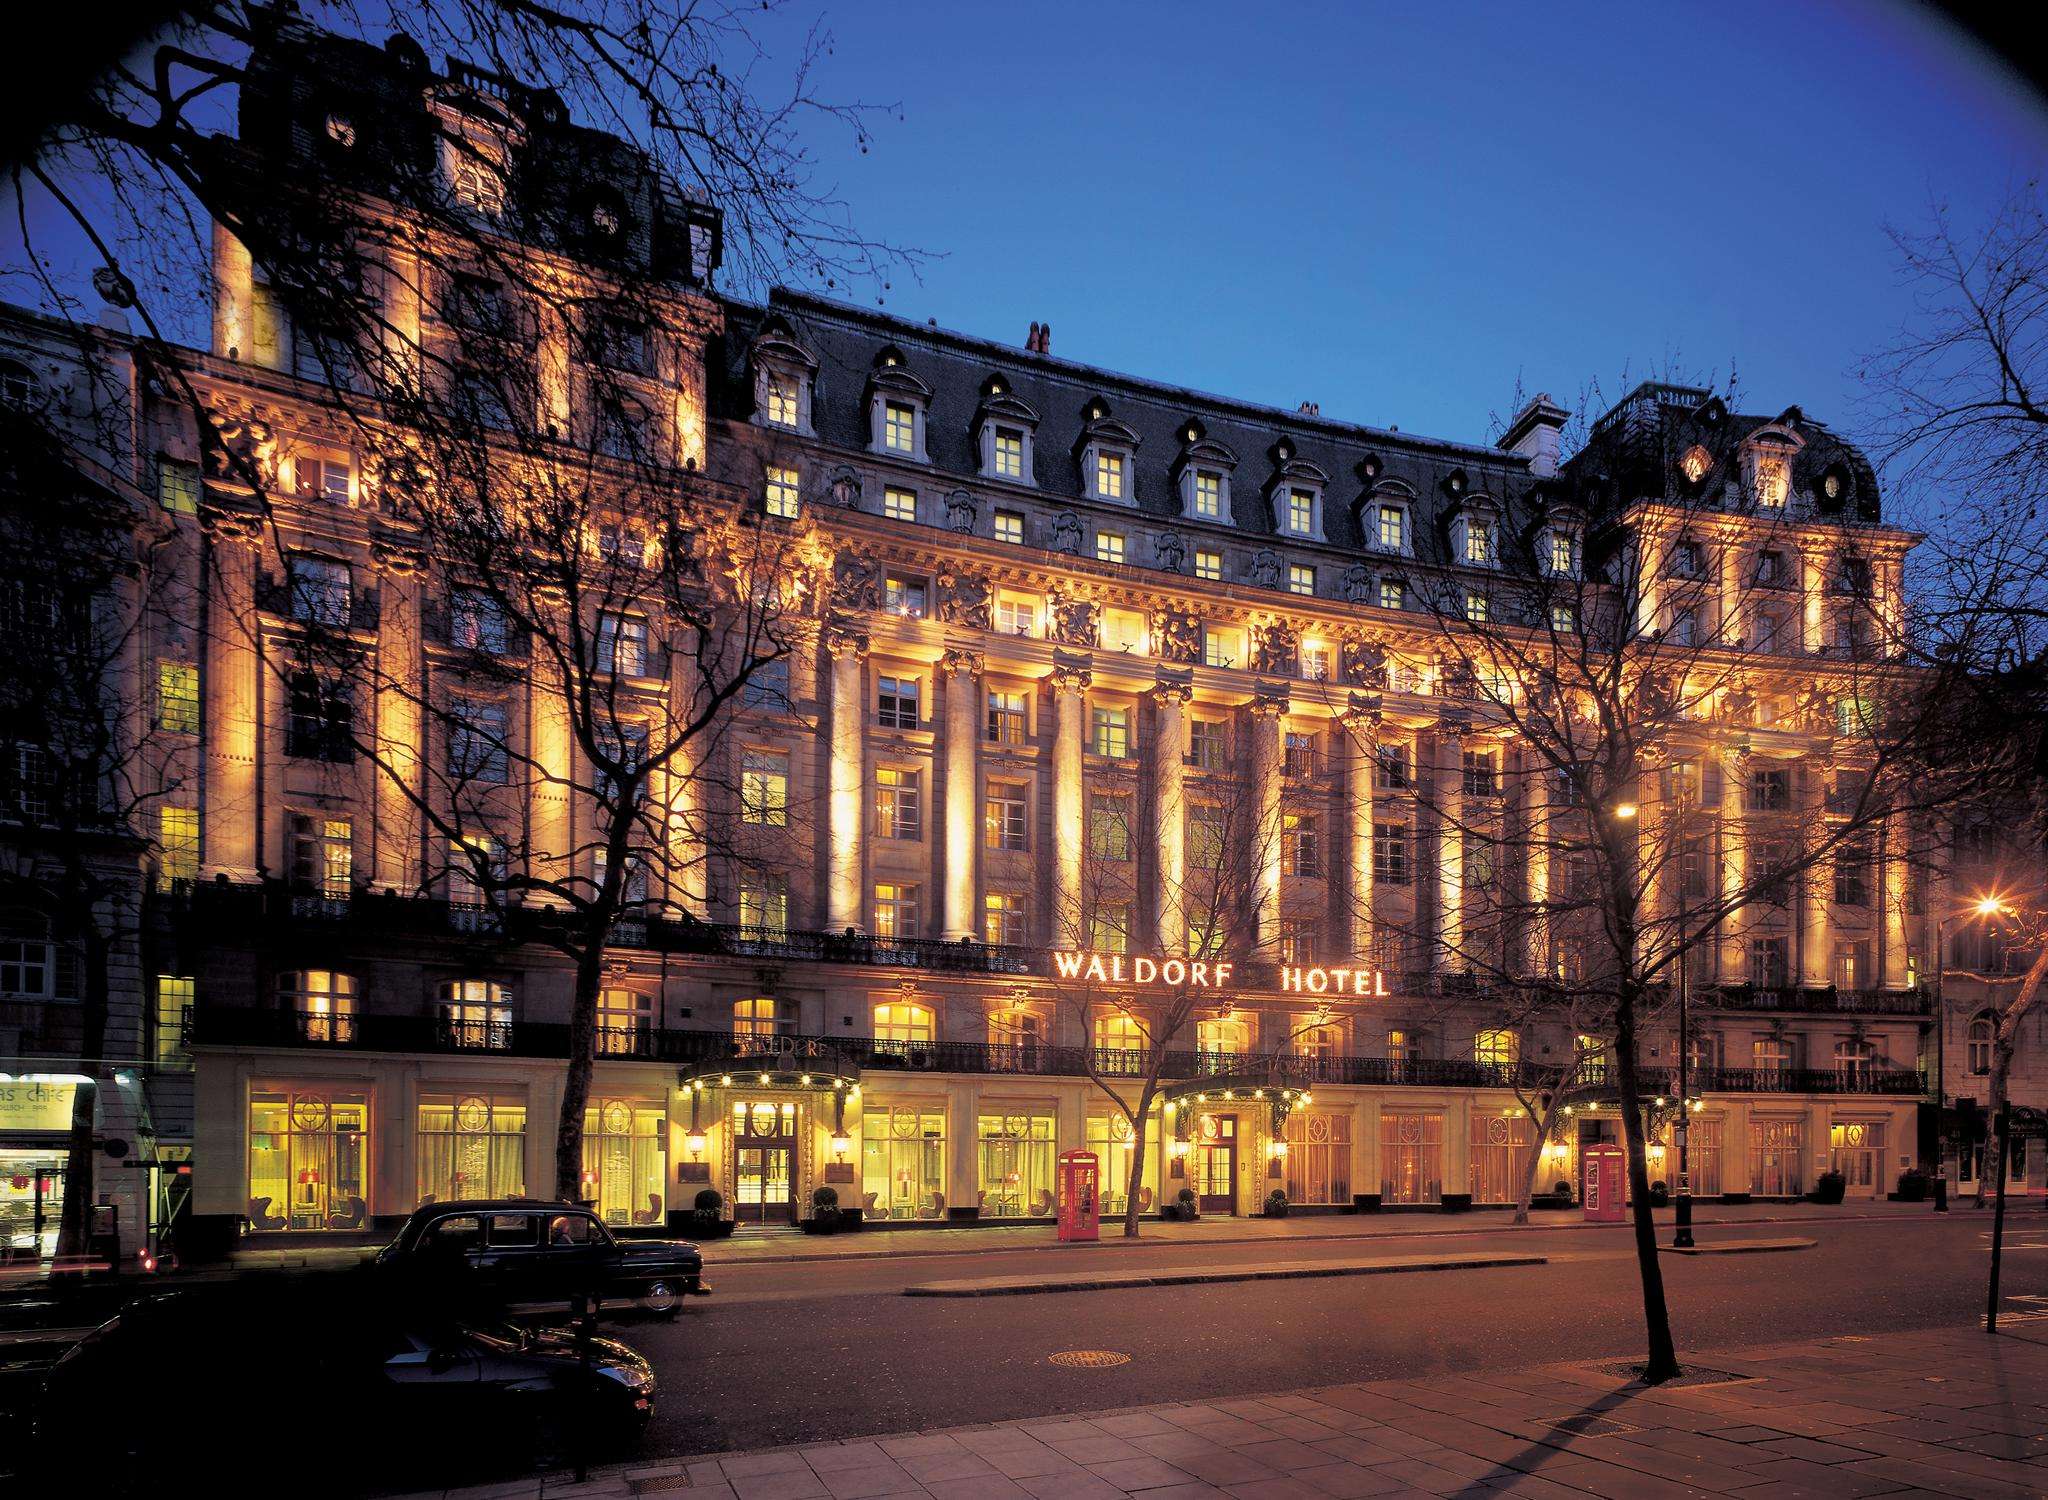 Hilton worldwide hotels resorts regno unito for Hotels 02 london